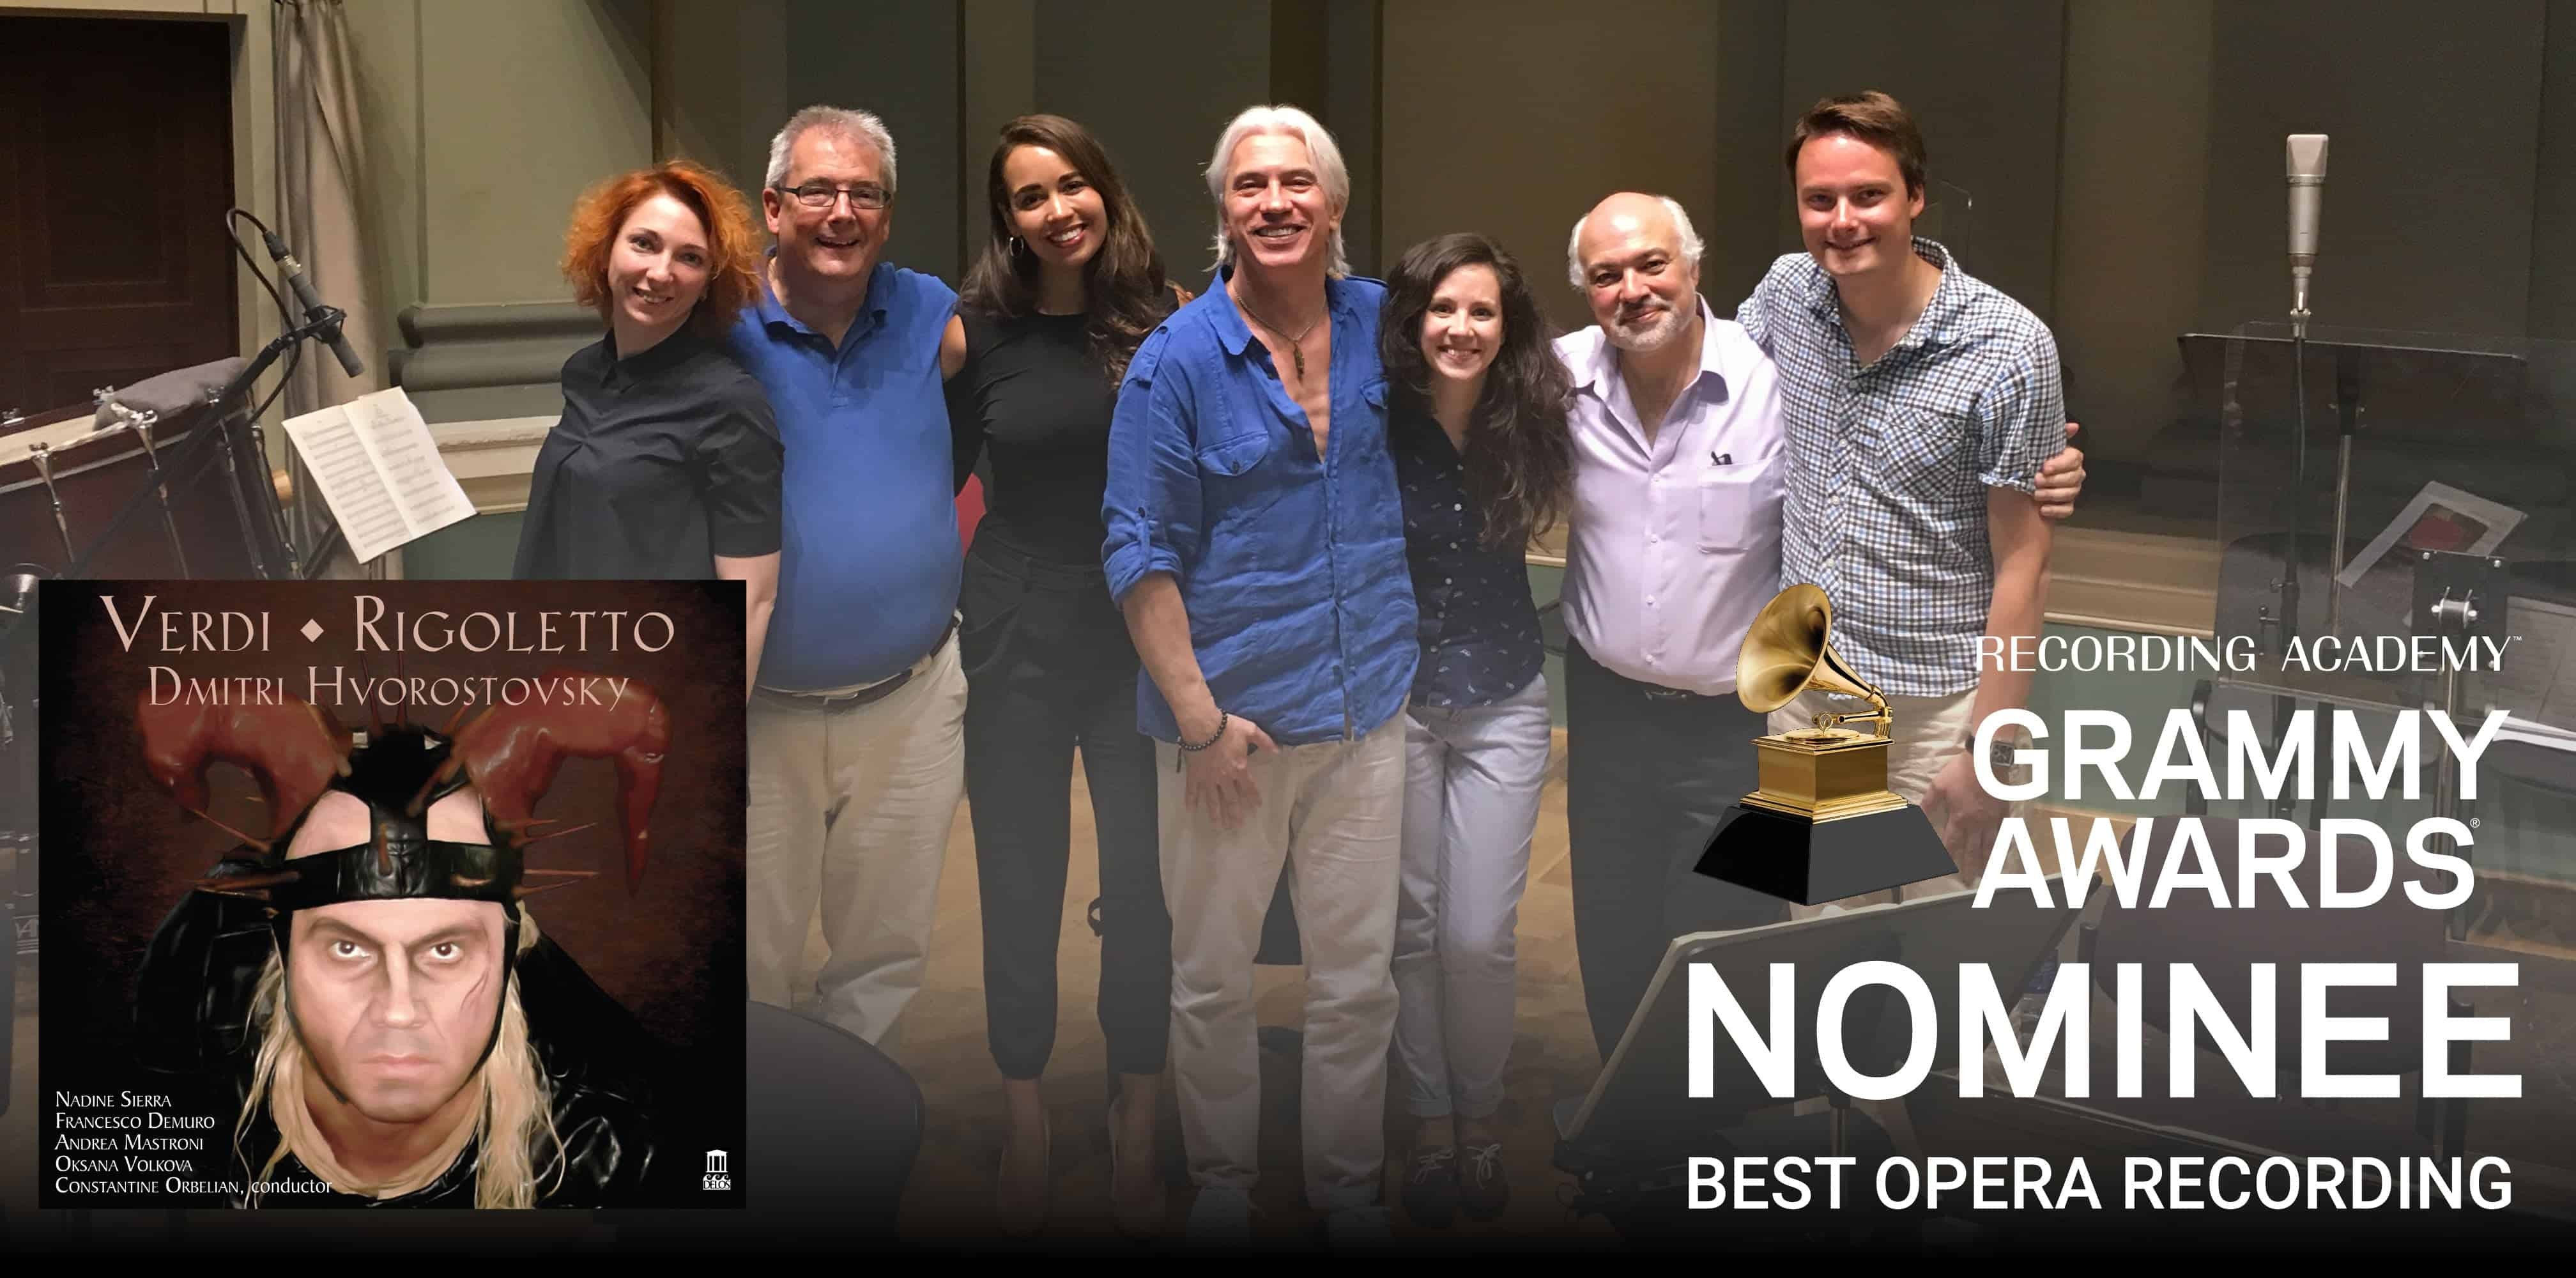 Verdi: Rigoletto - GRAMMY Nomination - Cover art with GRAMMY Nominee Sticker overlayed on recording session photo